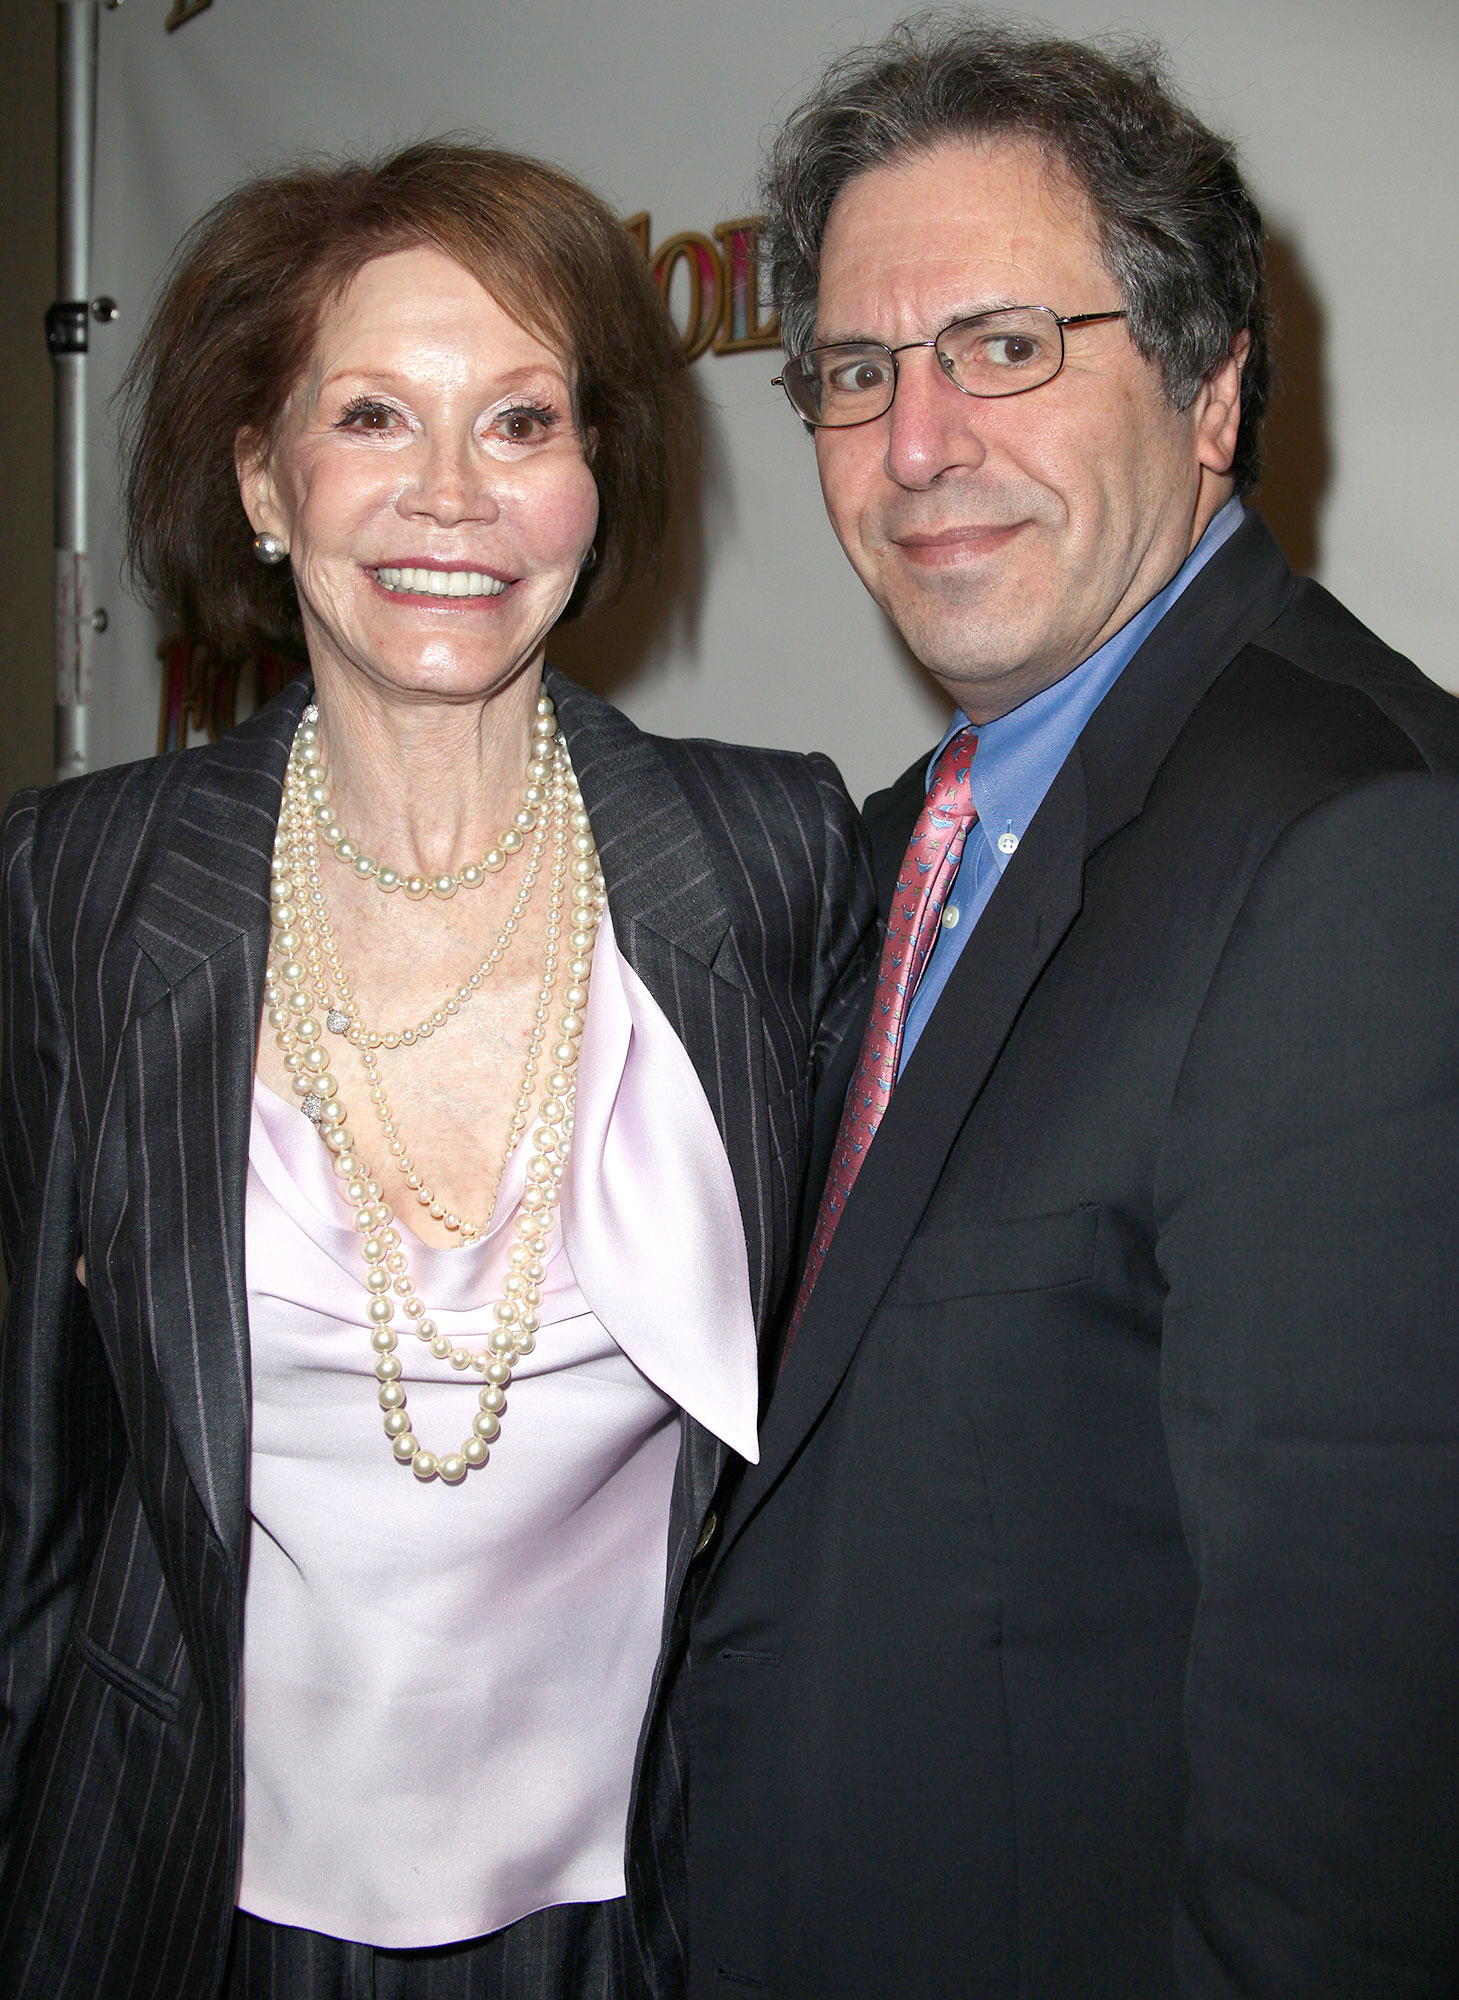 Mary Tyler Moore & husband Dr. Robert Levine attending the Broadway Opening Night Performance of 'Follies' at the Marquis Theatre in New York City, (Photo by Walter McBride/Corbis via Getty Images)